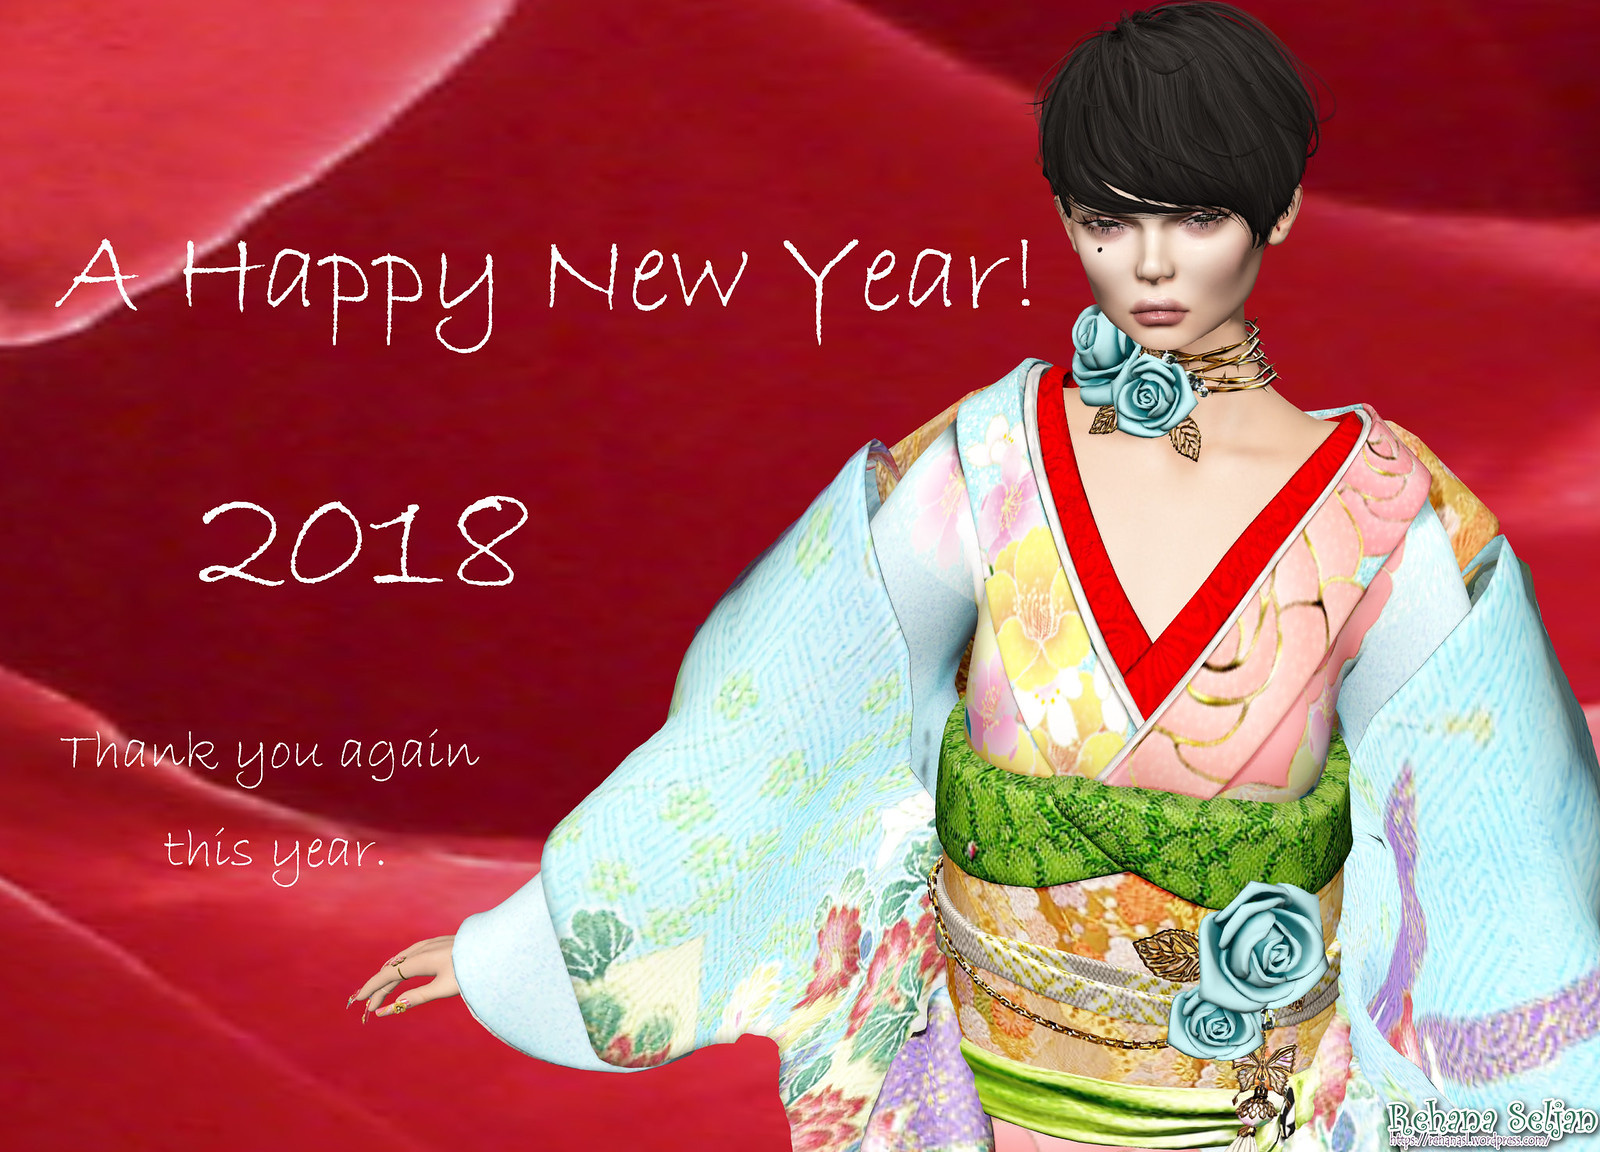 Happy New Year 2018 from Japan